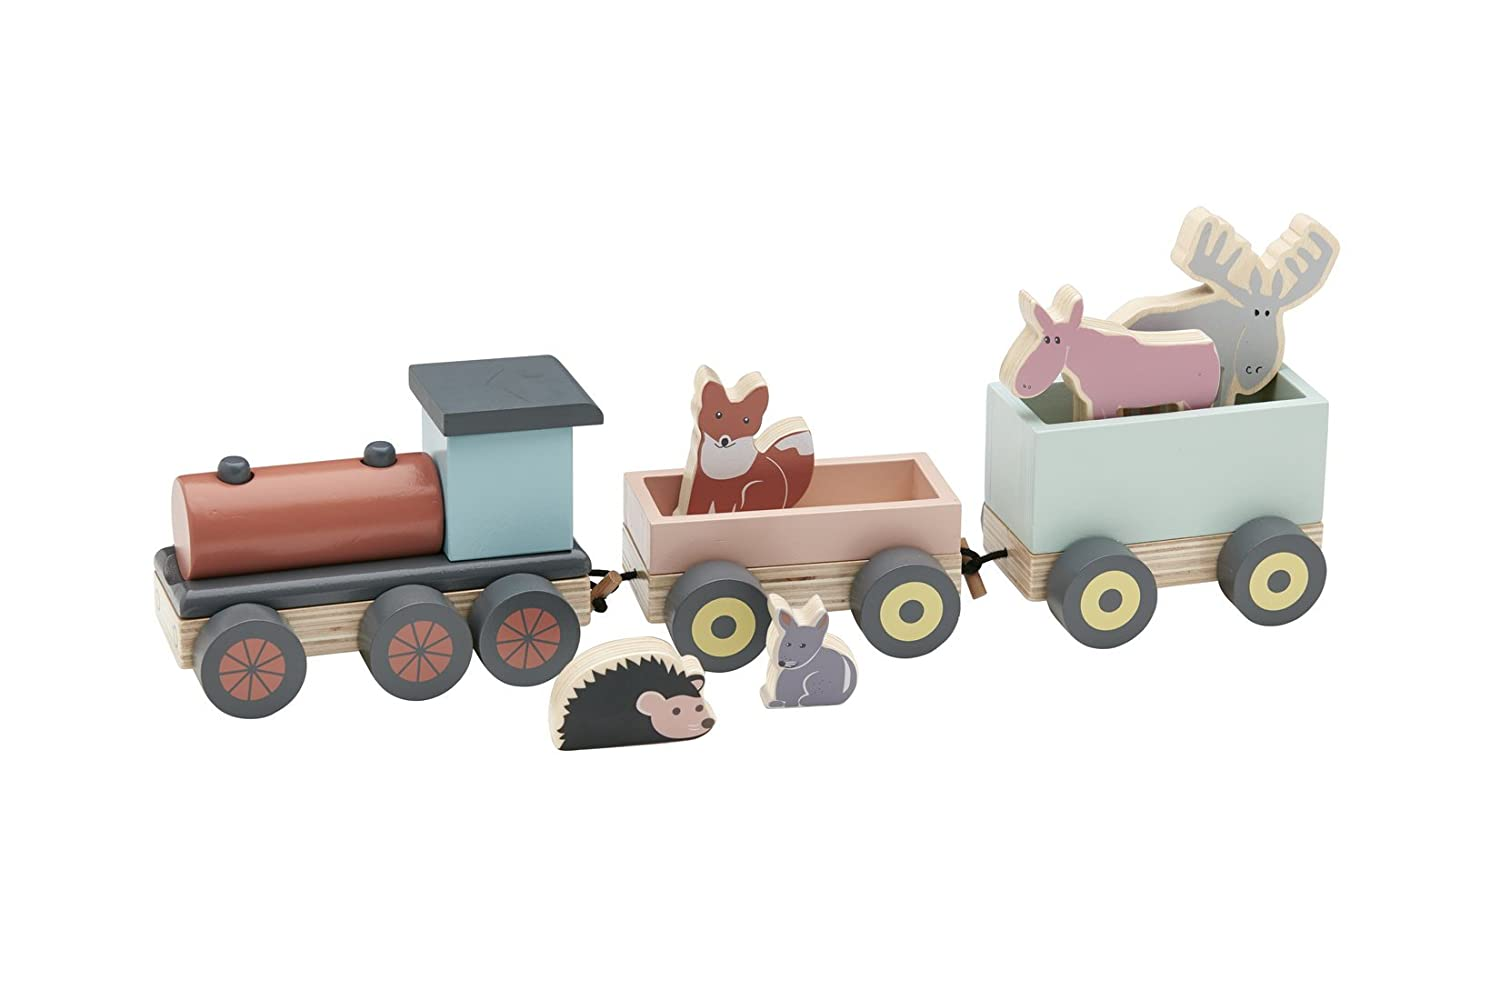 Kids Concept wooden toy train with Forest Animals Edvin 46X9X10 cm, Multi